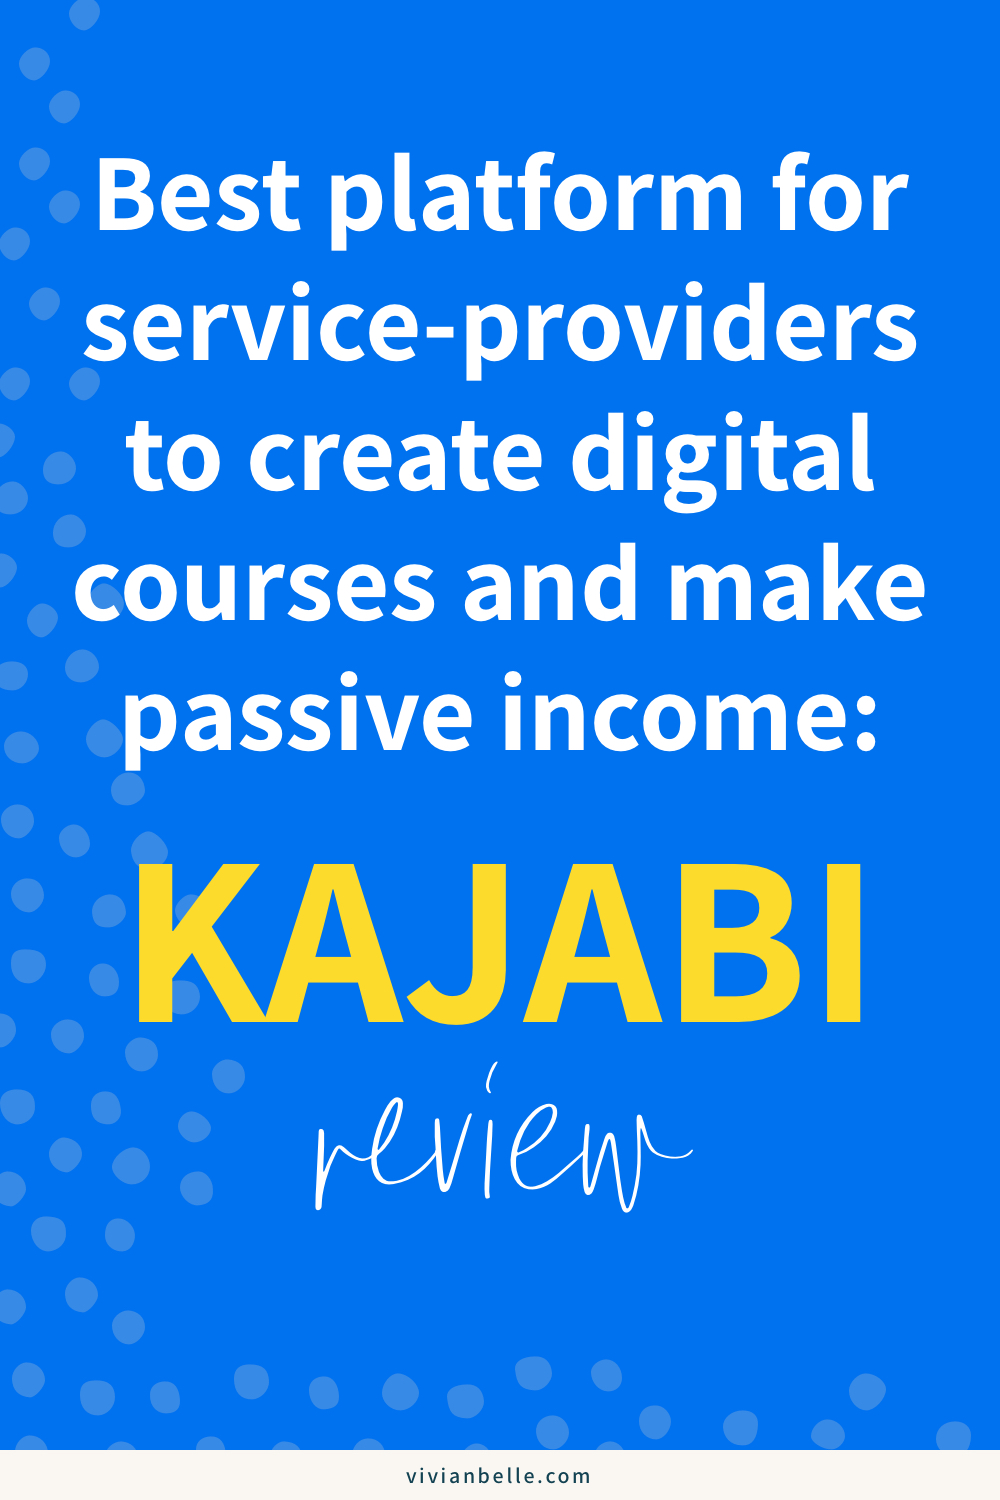 KAJABI REVIEW | Best platform for service-providers to create digital courses and make passive income